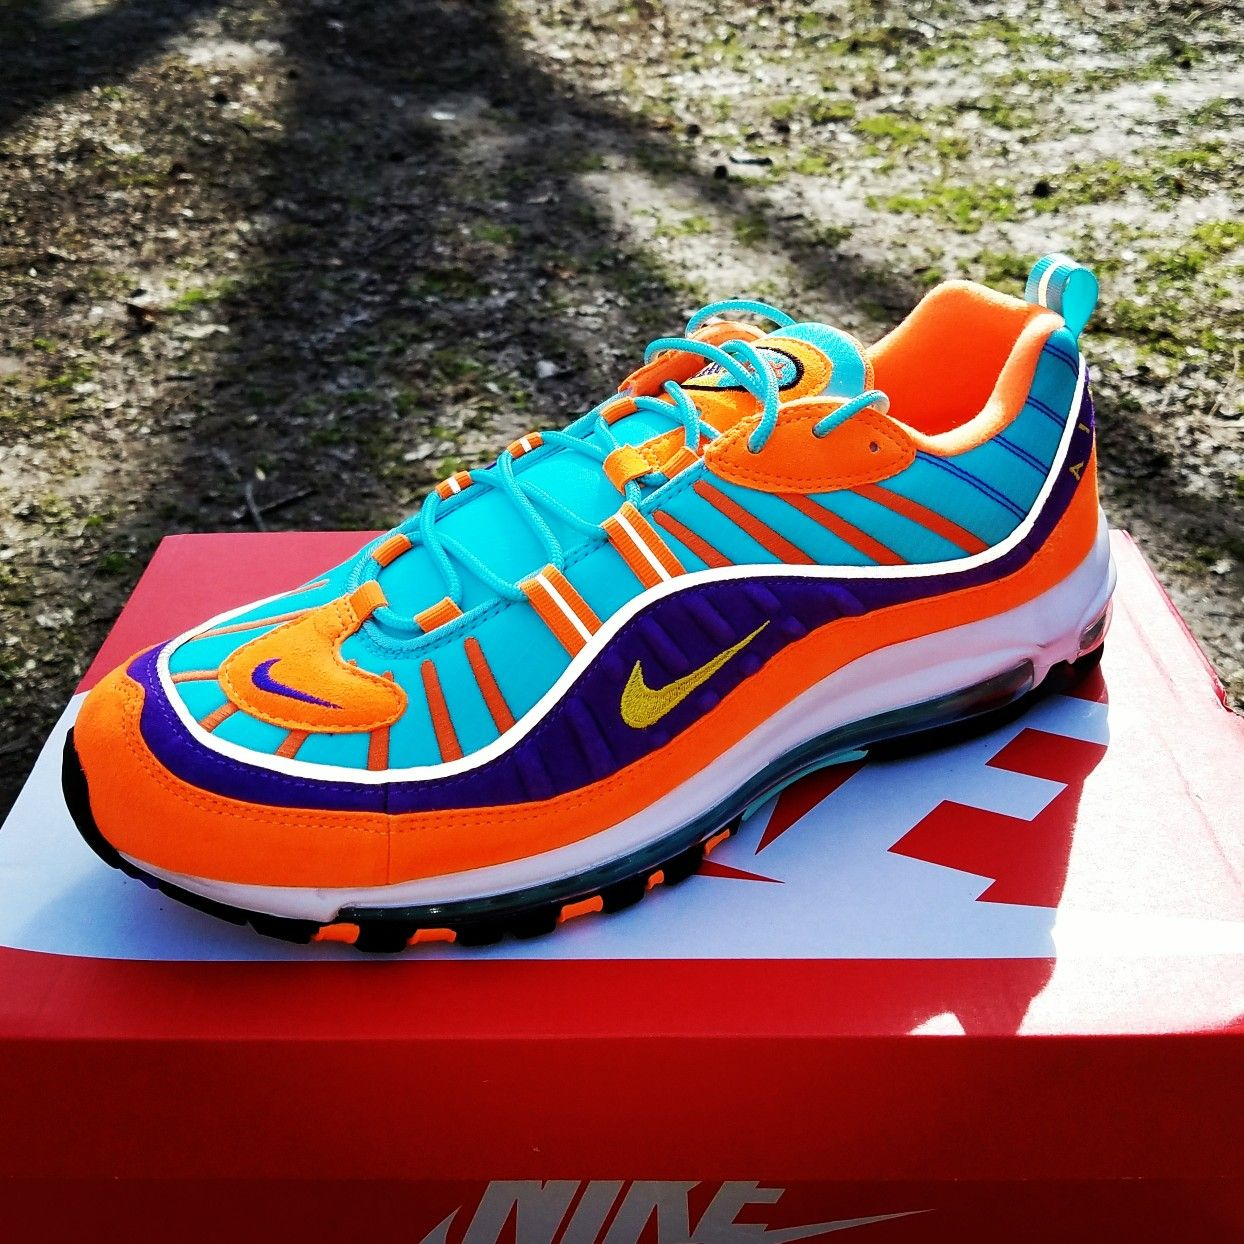 online retailer 821b0 91257 2018 Nike Air Max 98 Cone/Rugrats | Nike Shoes | Nike shoes ...